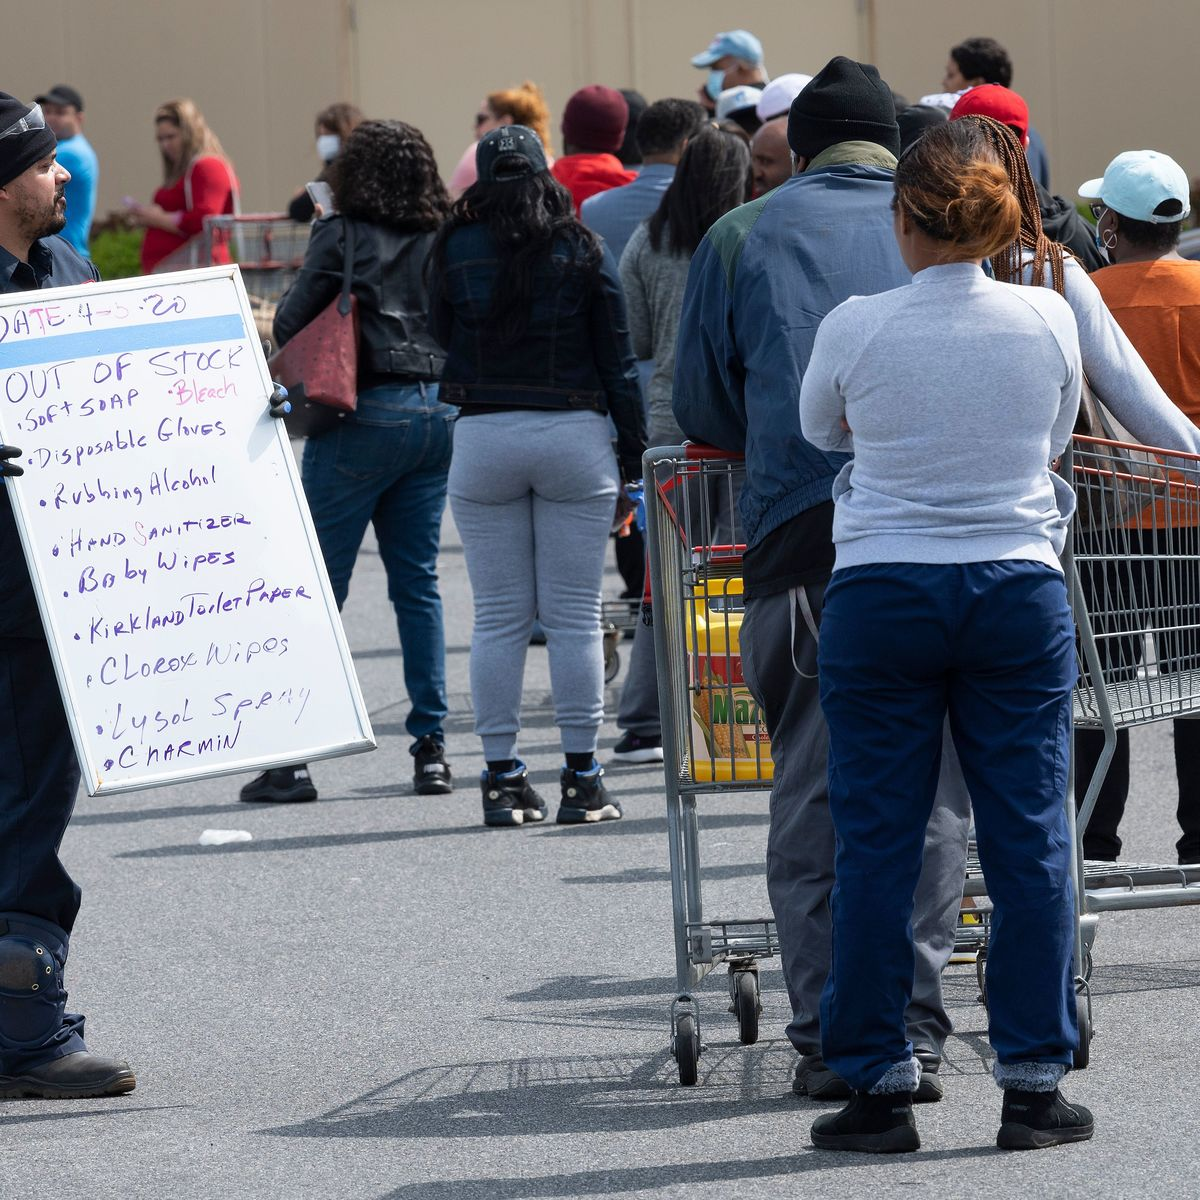 Costco lines via Getty Images